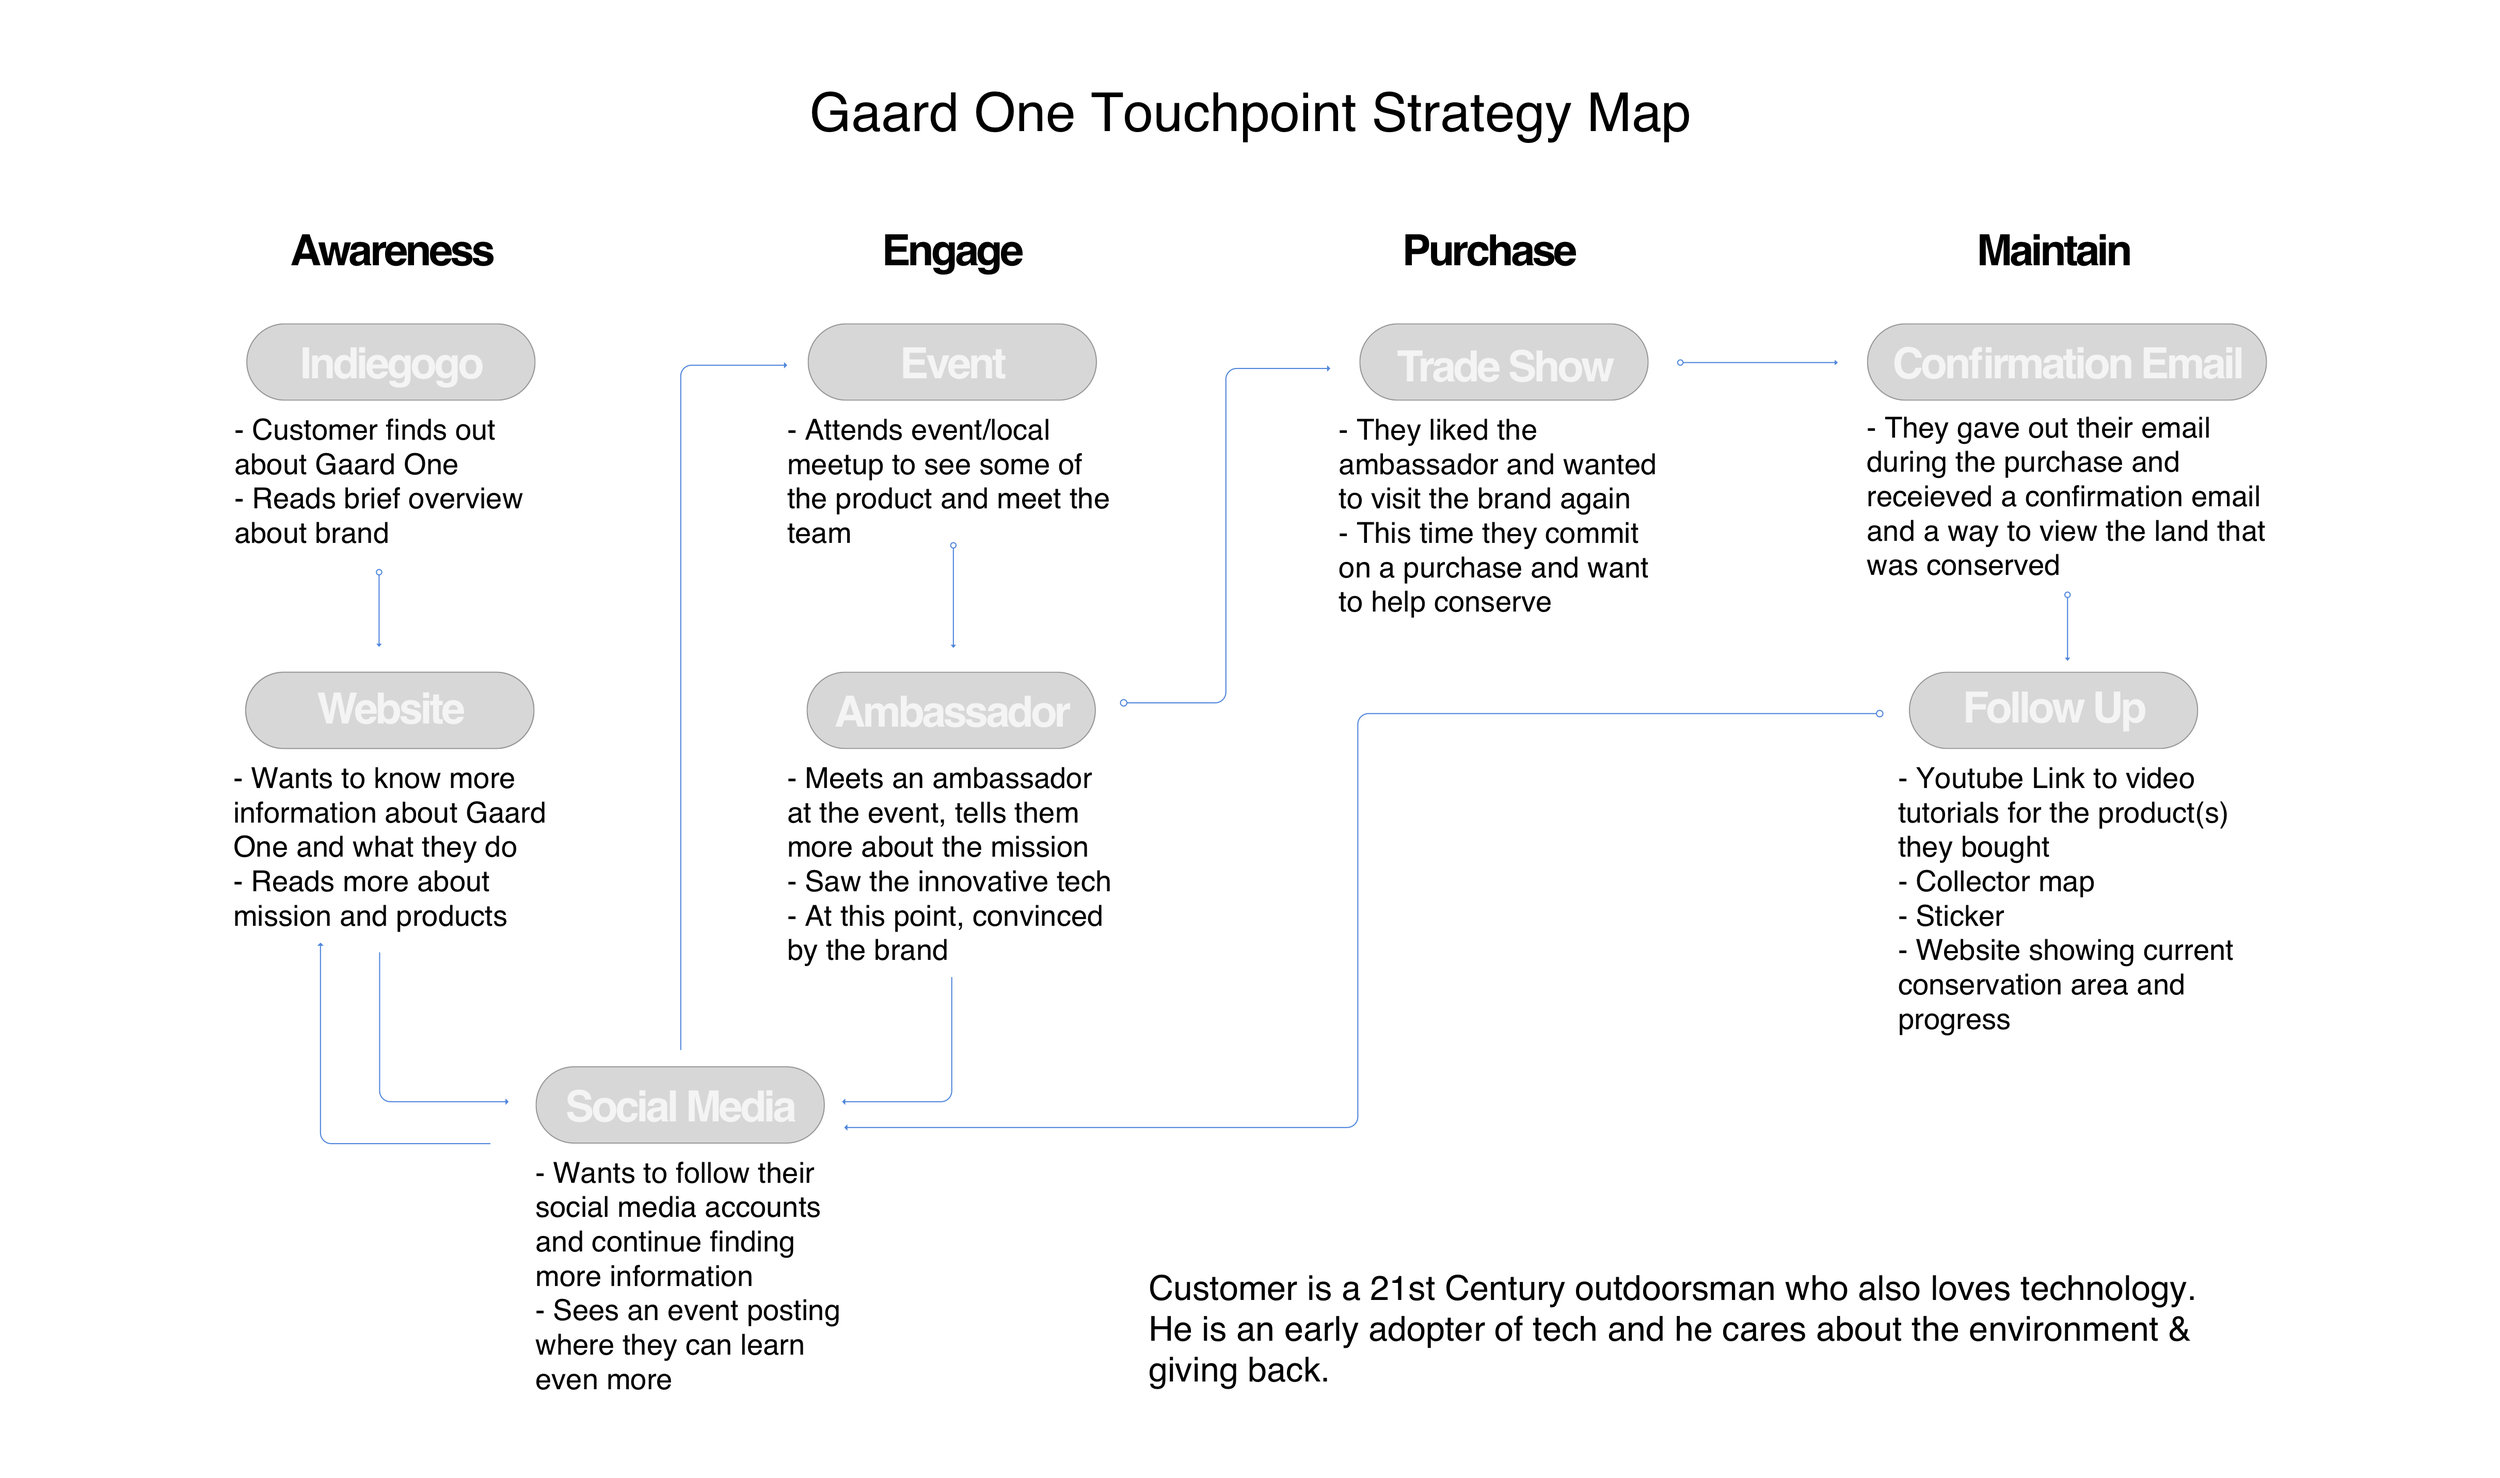 Preliminary Strategy Map